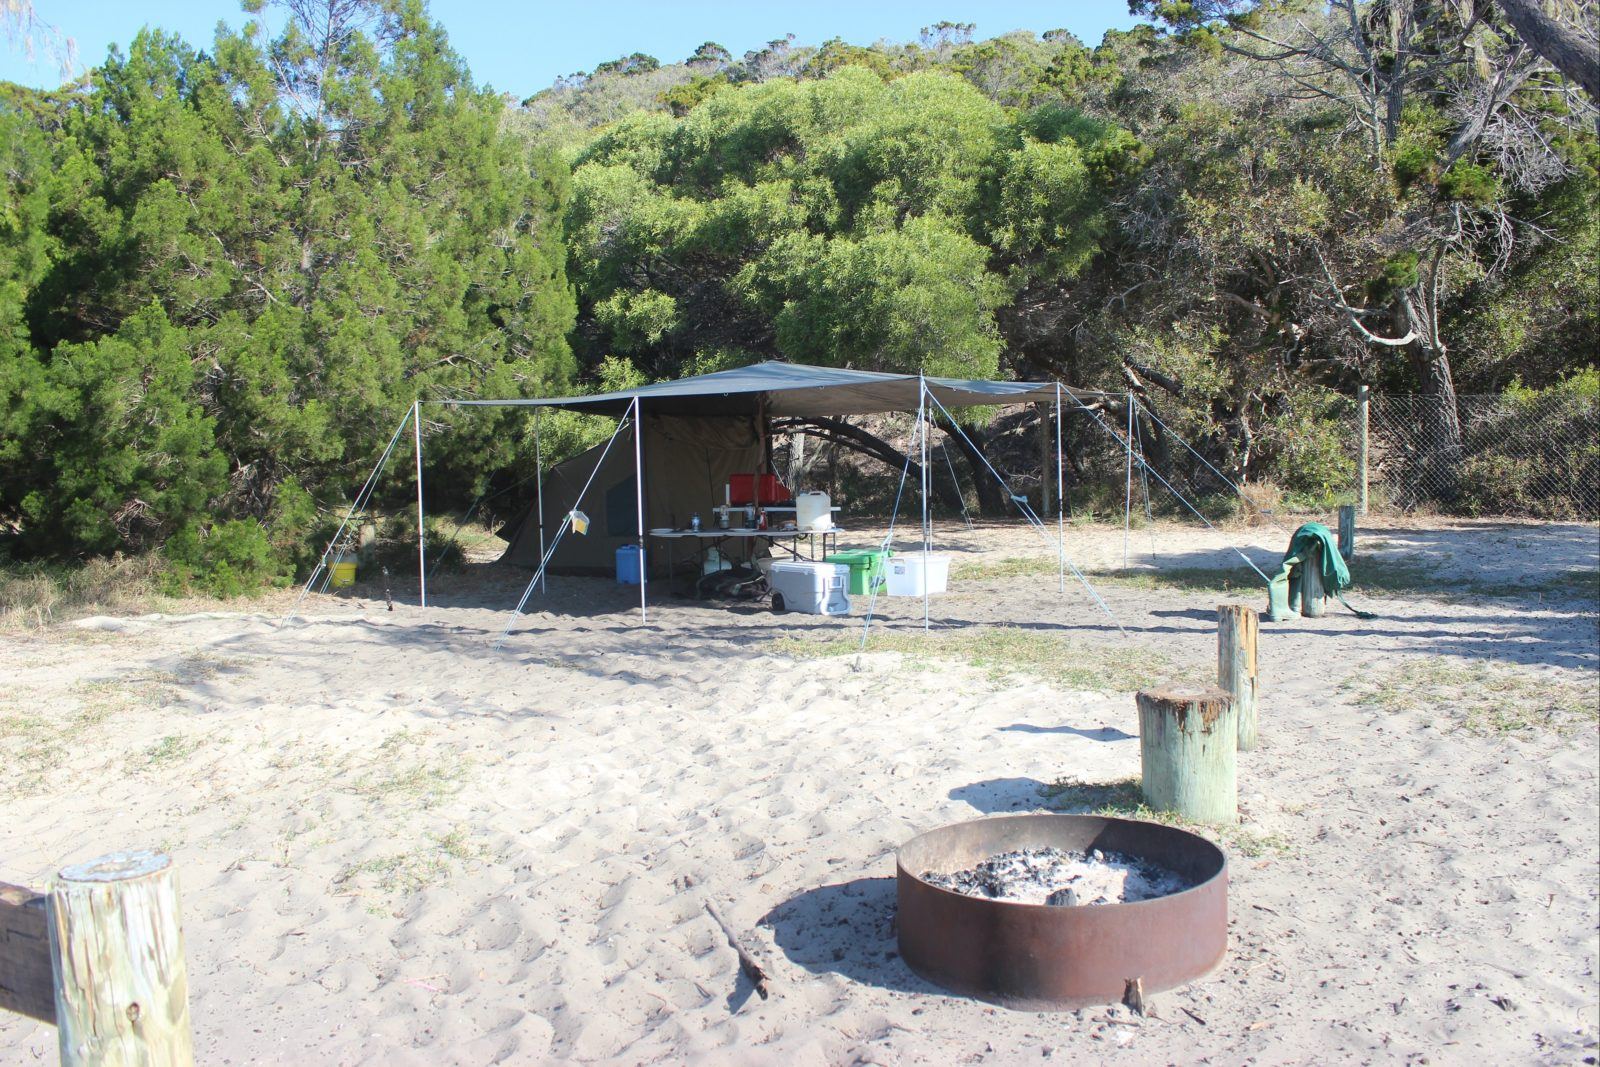 Beachfront camping at Waddy Point Fraser Island